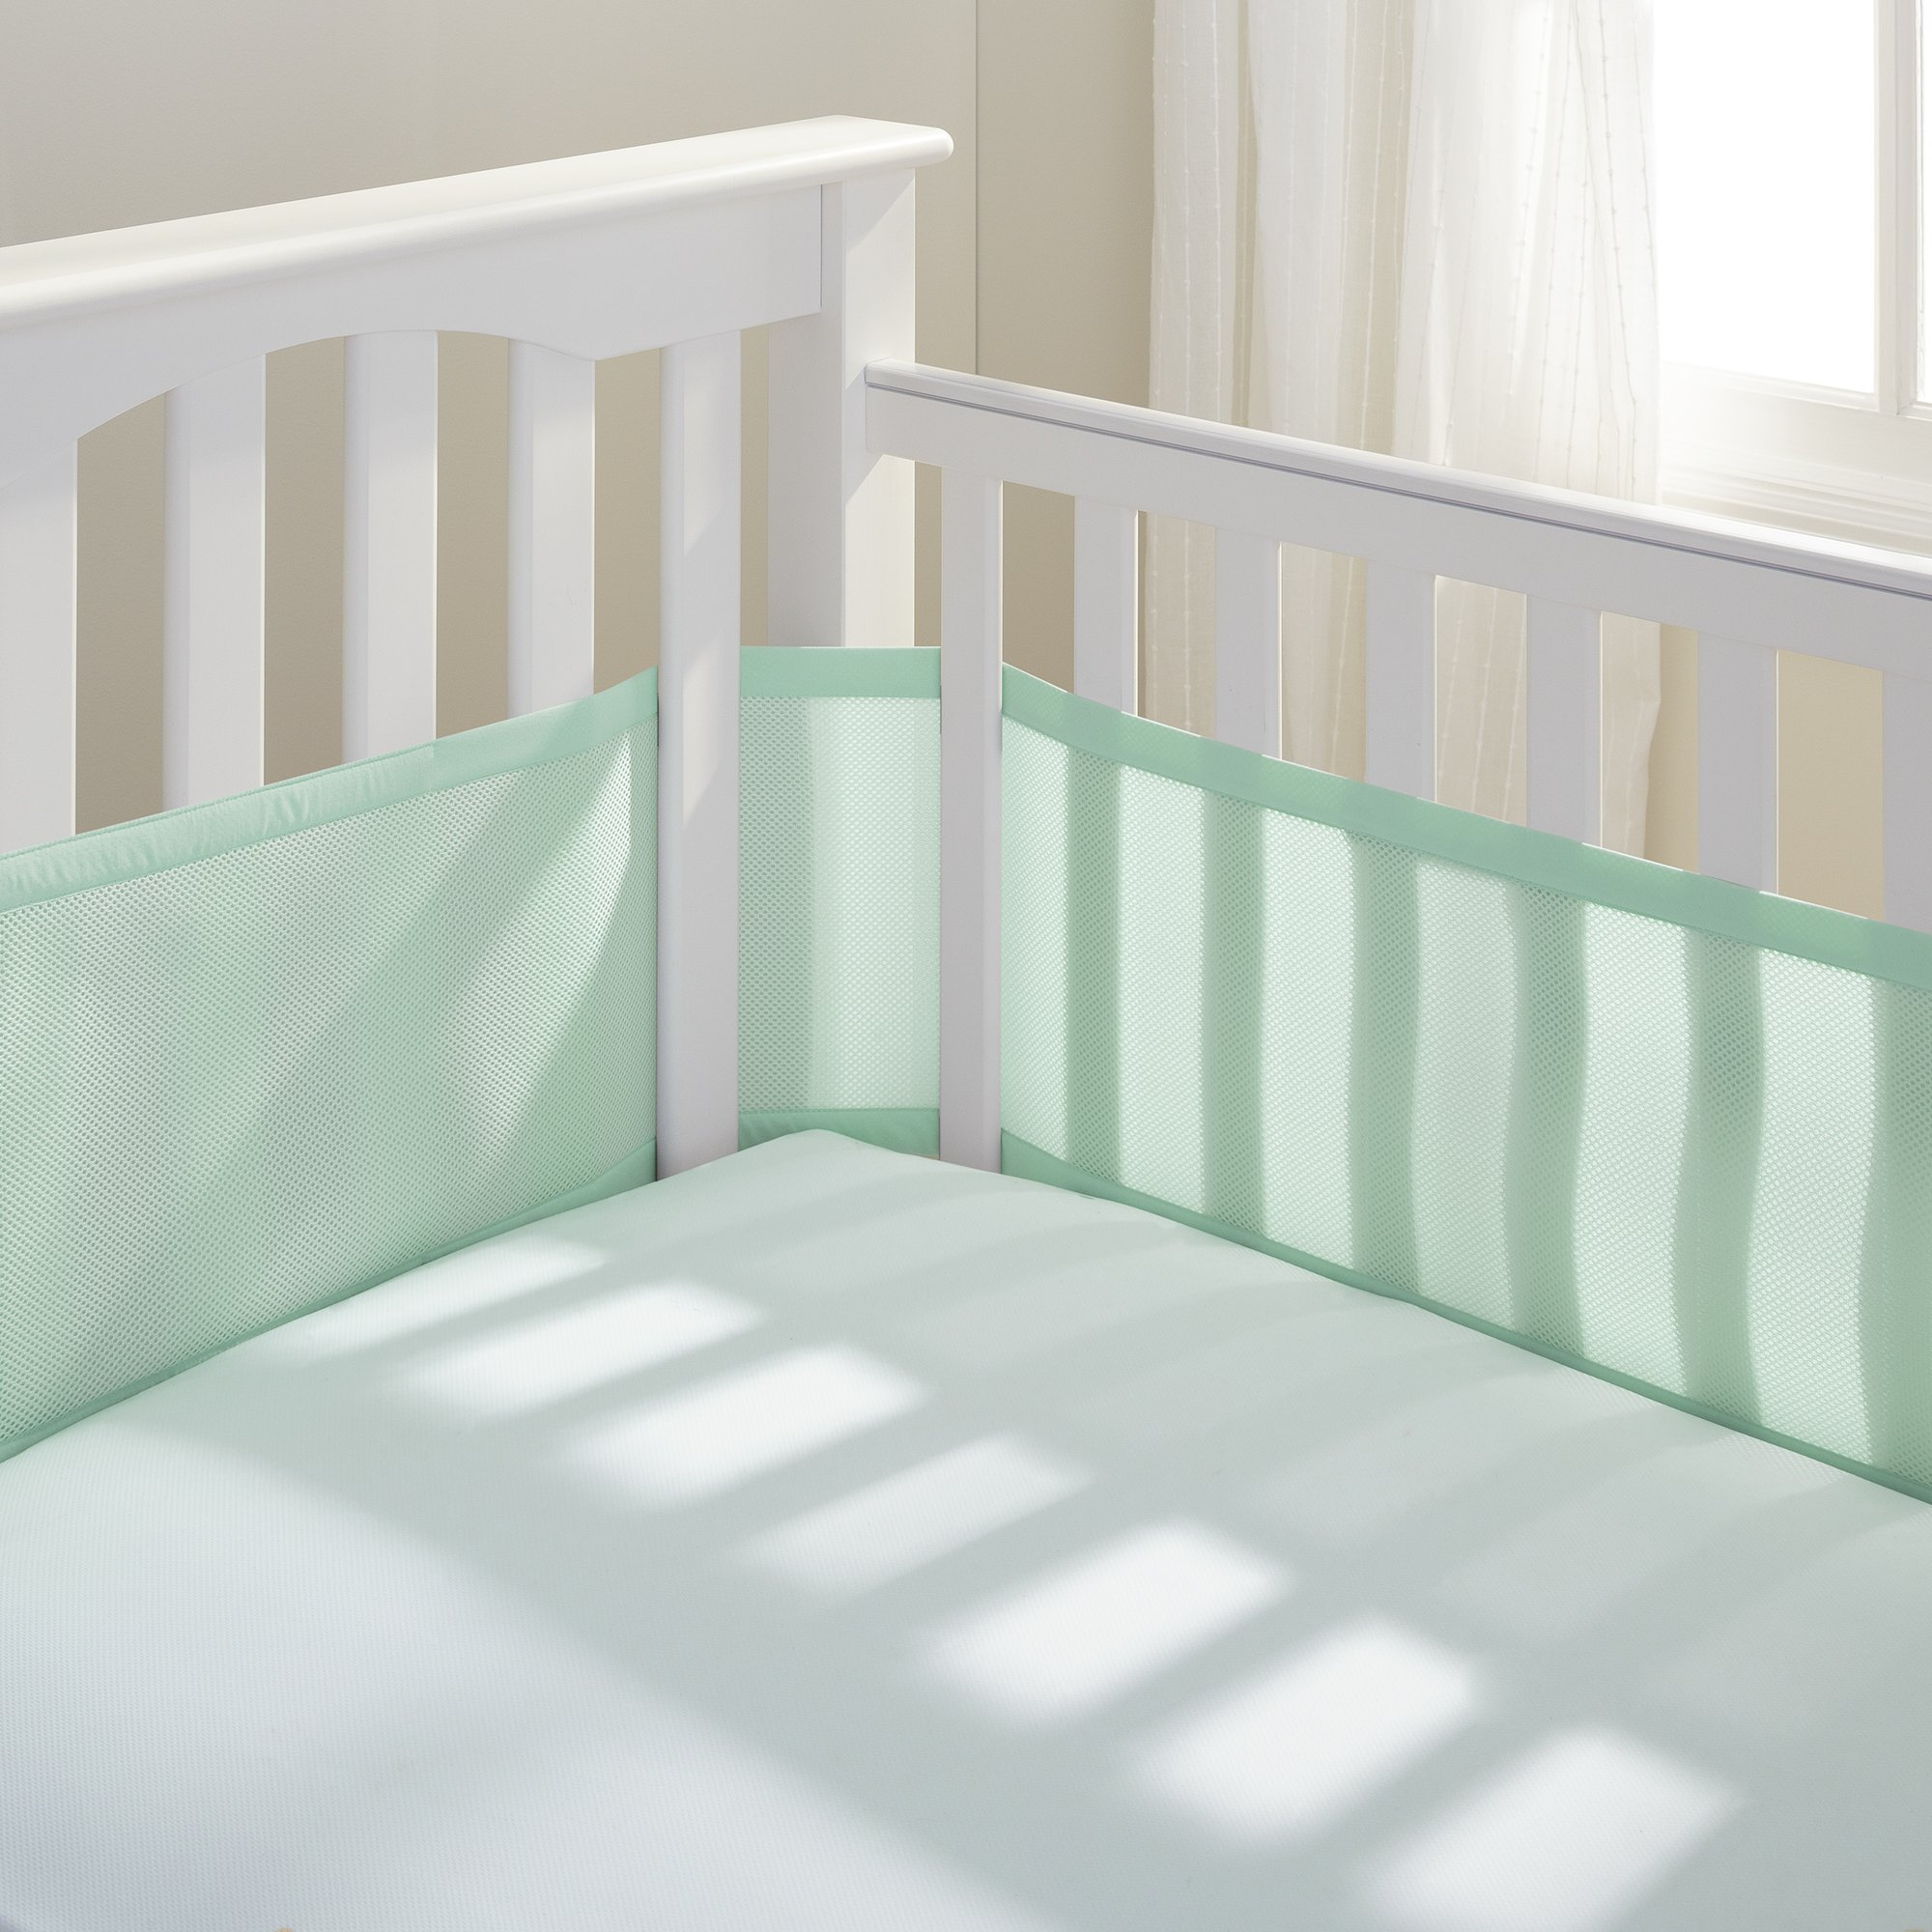 BreathableBaby Breathable Mesh Crib Liner, White (Mint Green)